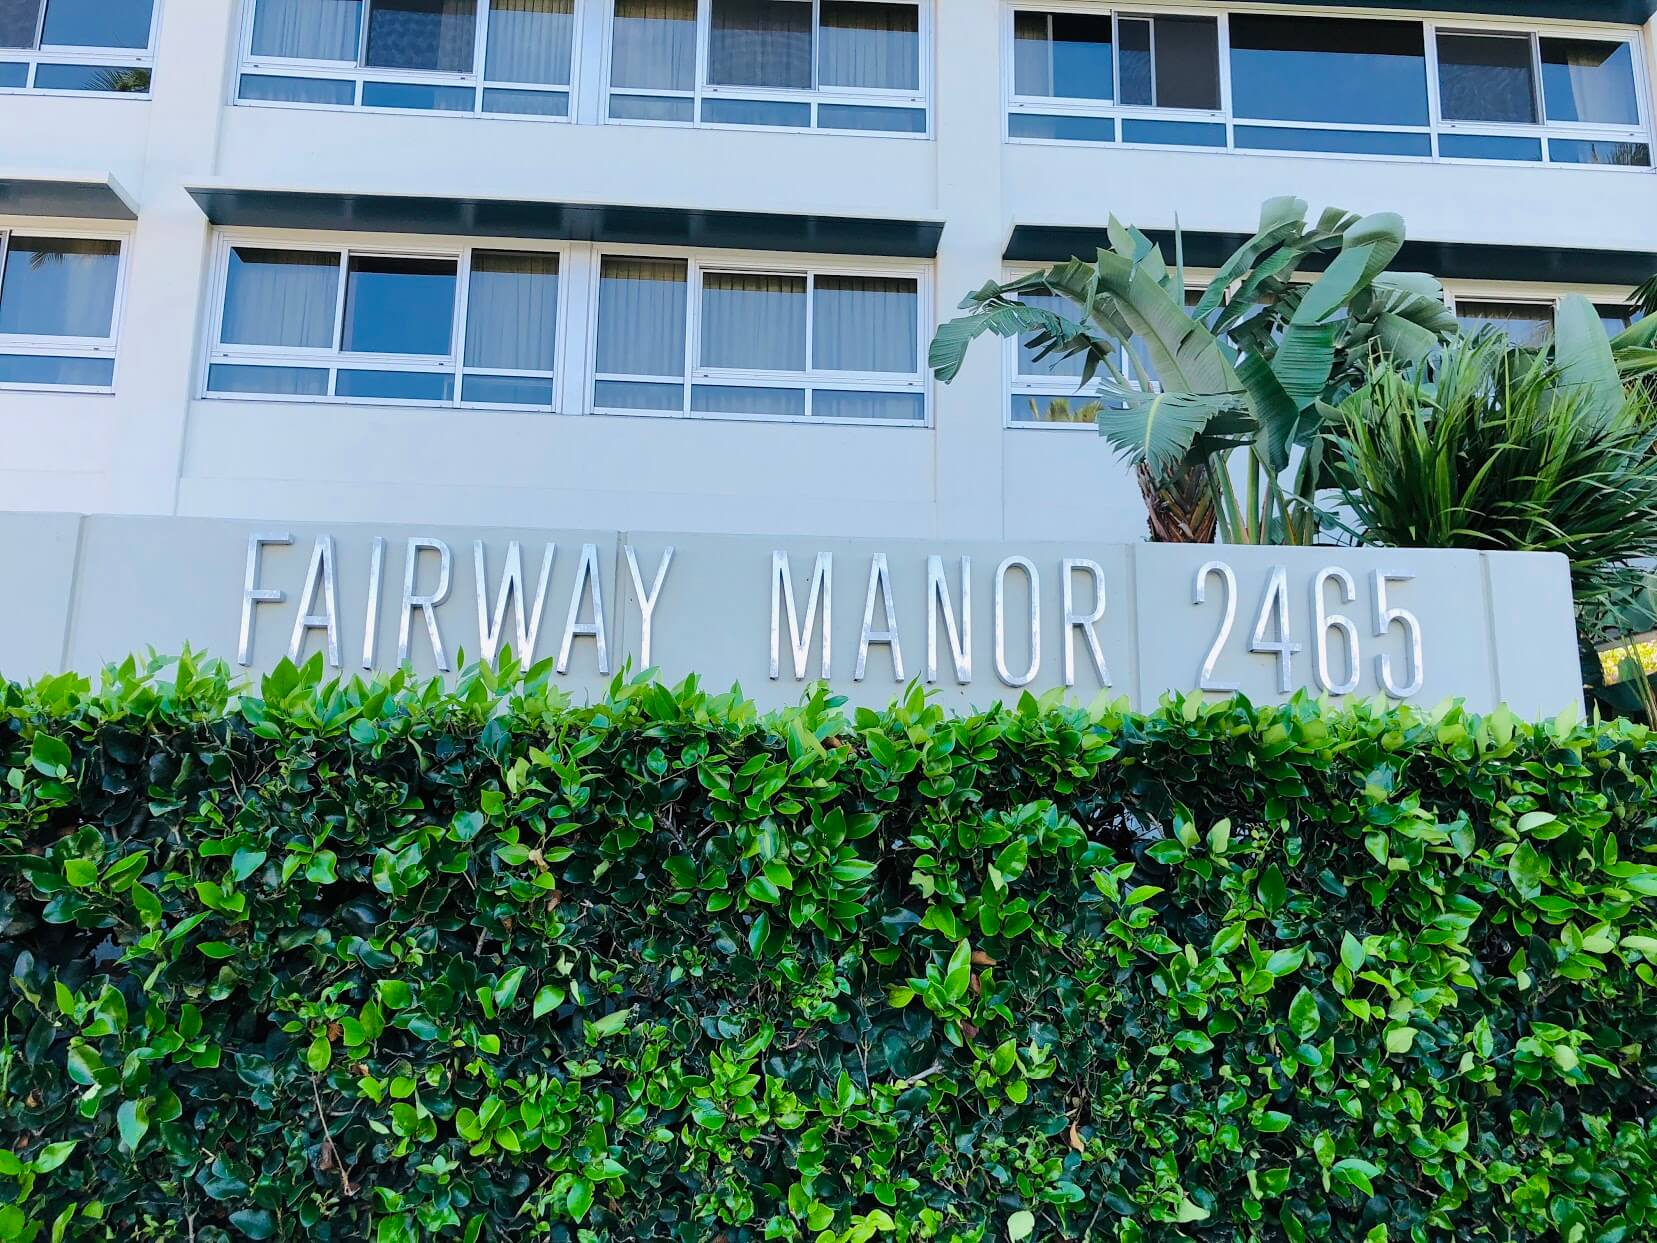 Fairway Manorの看板